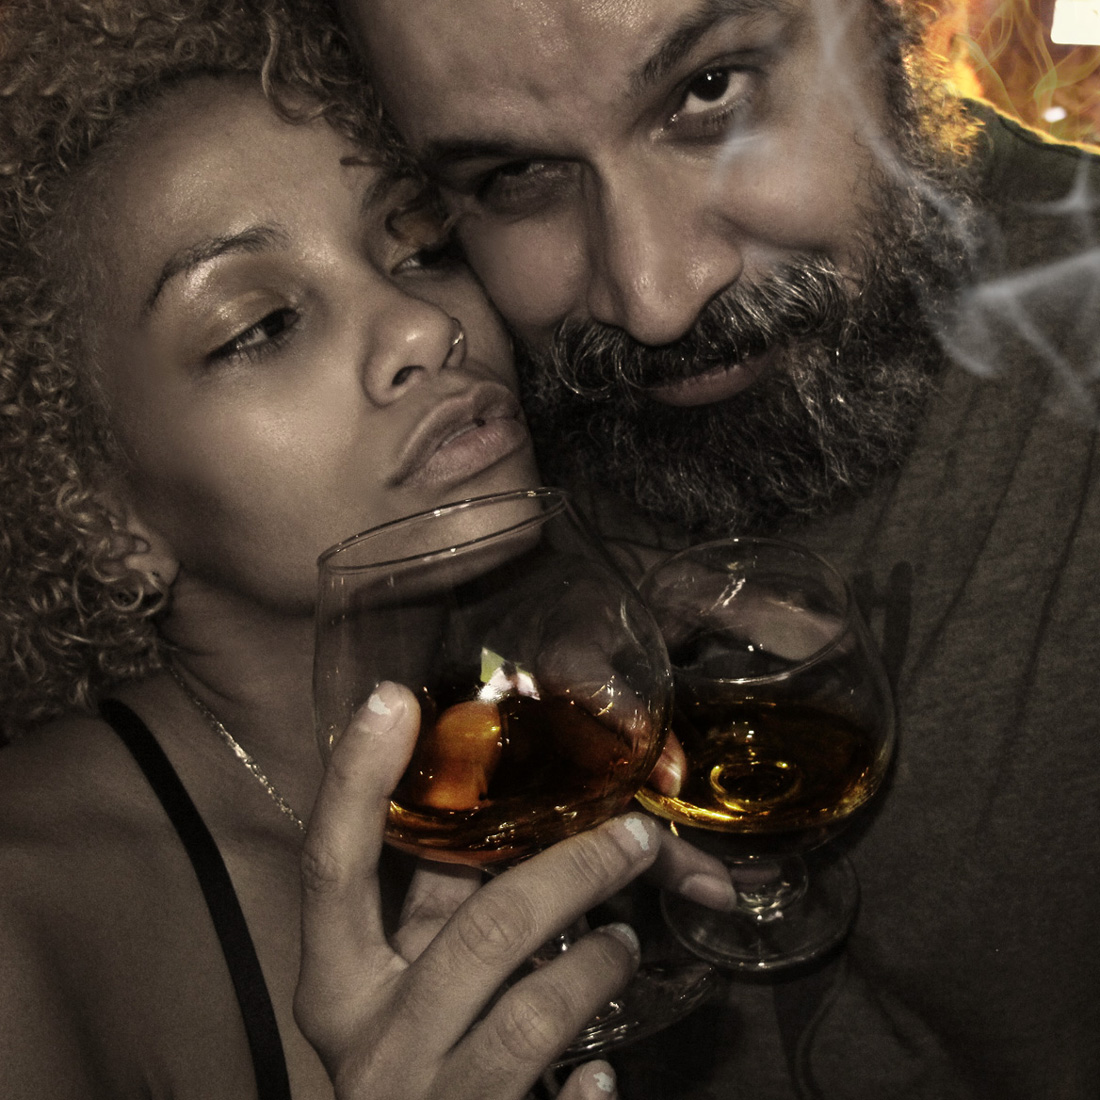 William Fuentes and Yomaylin Aylin Feliz like to drink the Fire water know as Scotch